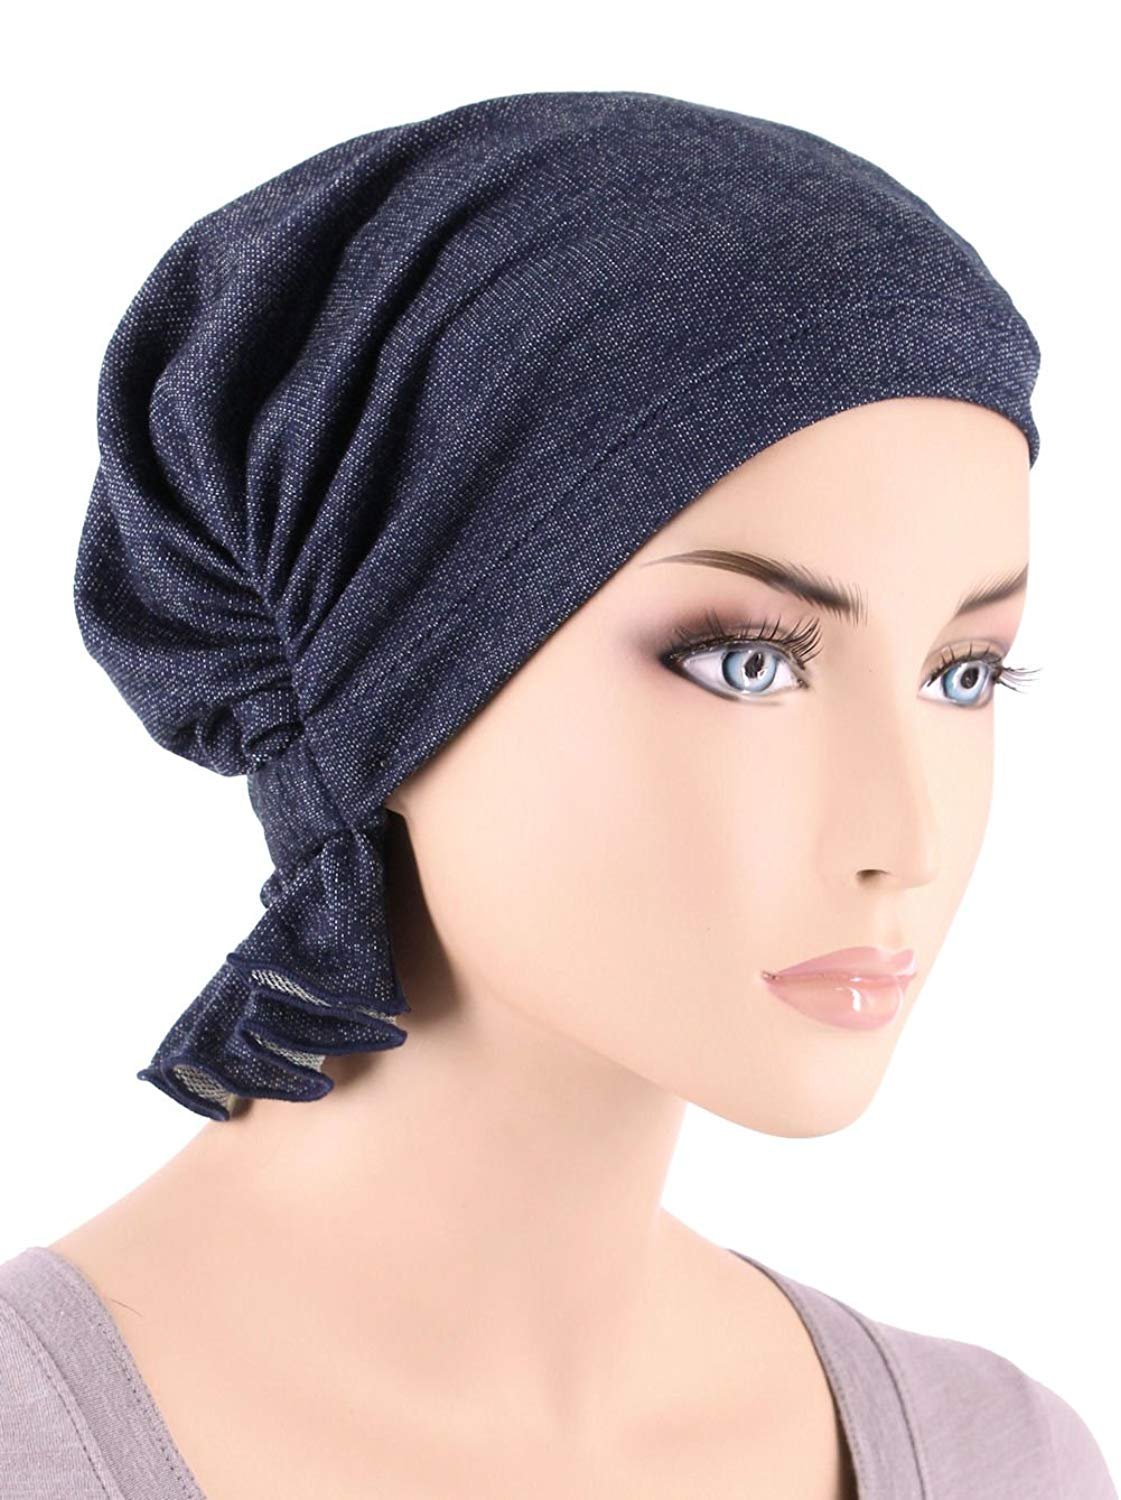 ff8e1d01aed Turban Plus The Abbey Cap in Cotton Knit Chemo Caps Cancer Hats for Women